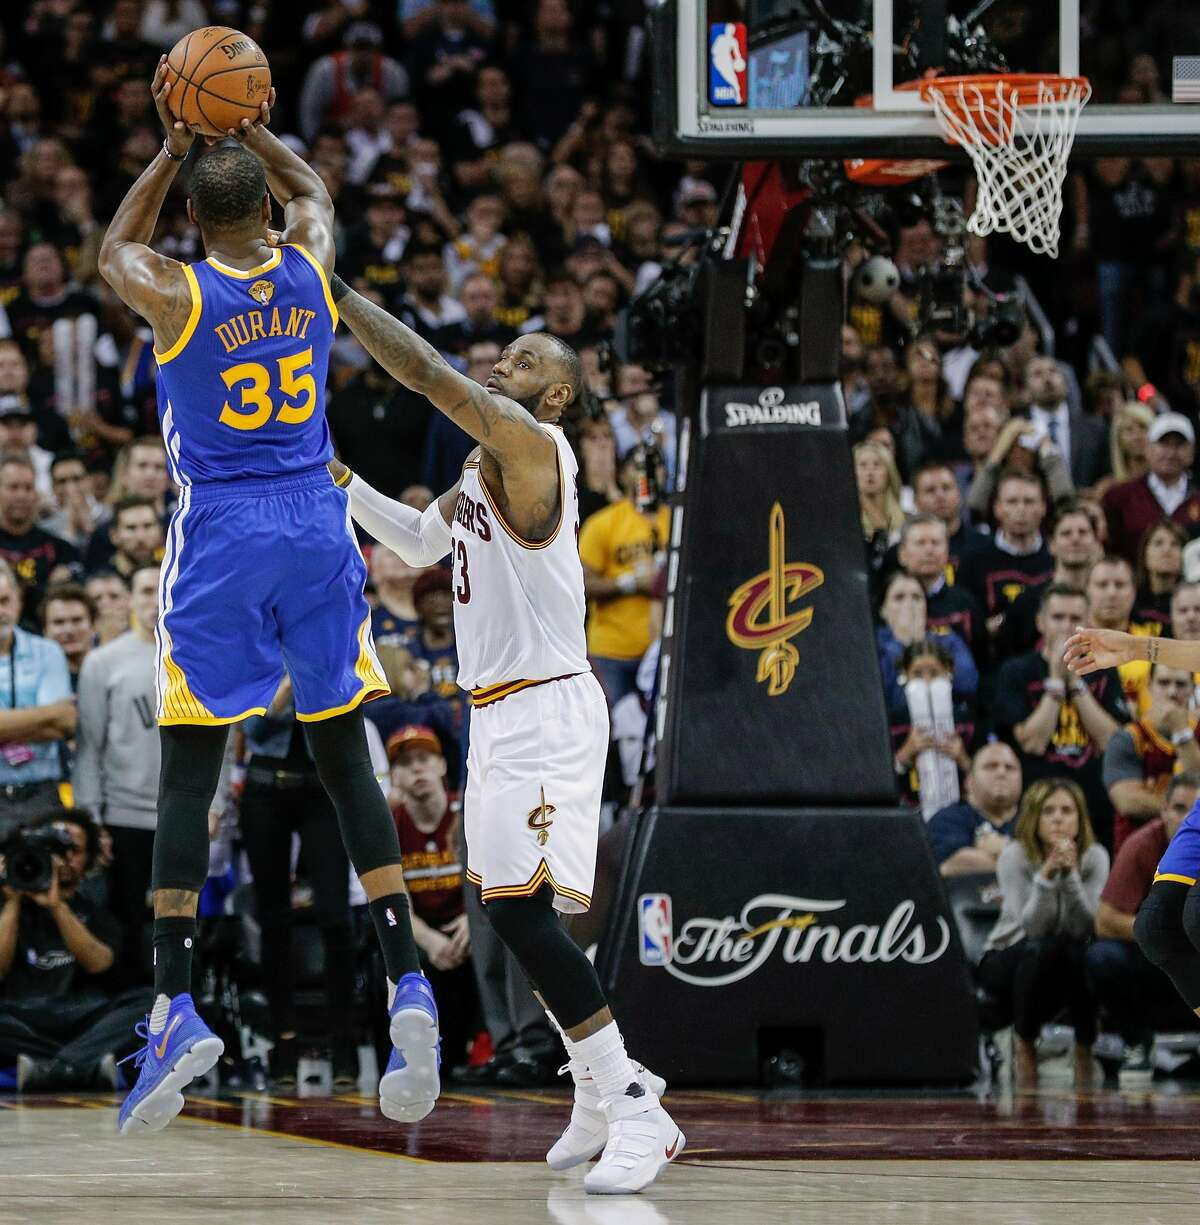 Golden State Warriors' Kevin Durant shoots over Cleveland Cavaliers' LeBron James in the fourth quarter during Game 3 of the 2017 NBA Finals at Quicken Loans Arena on Wednesday, June 7, 2017 in Cleveland, Ohio.